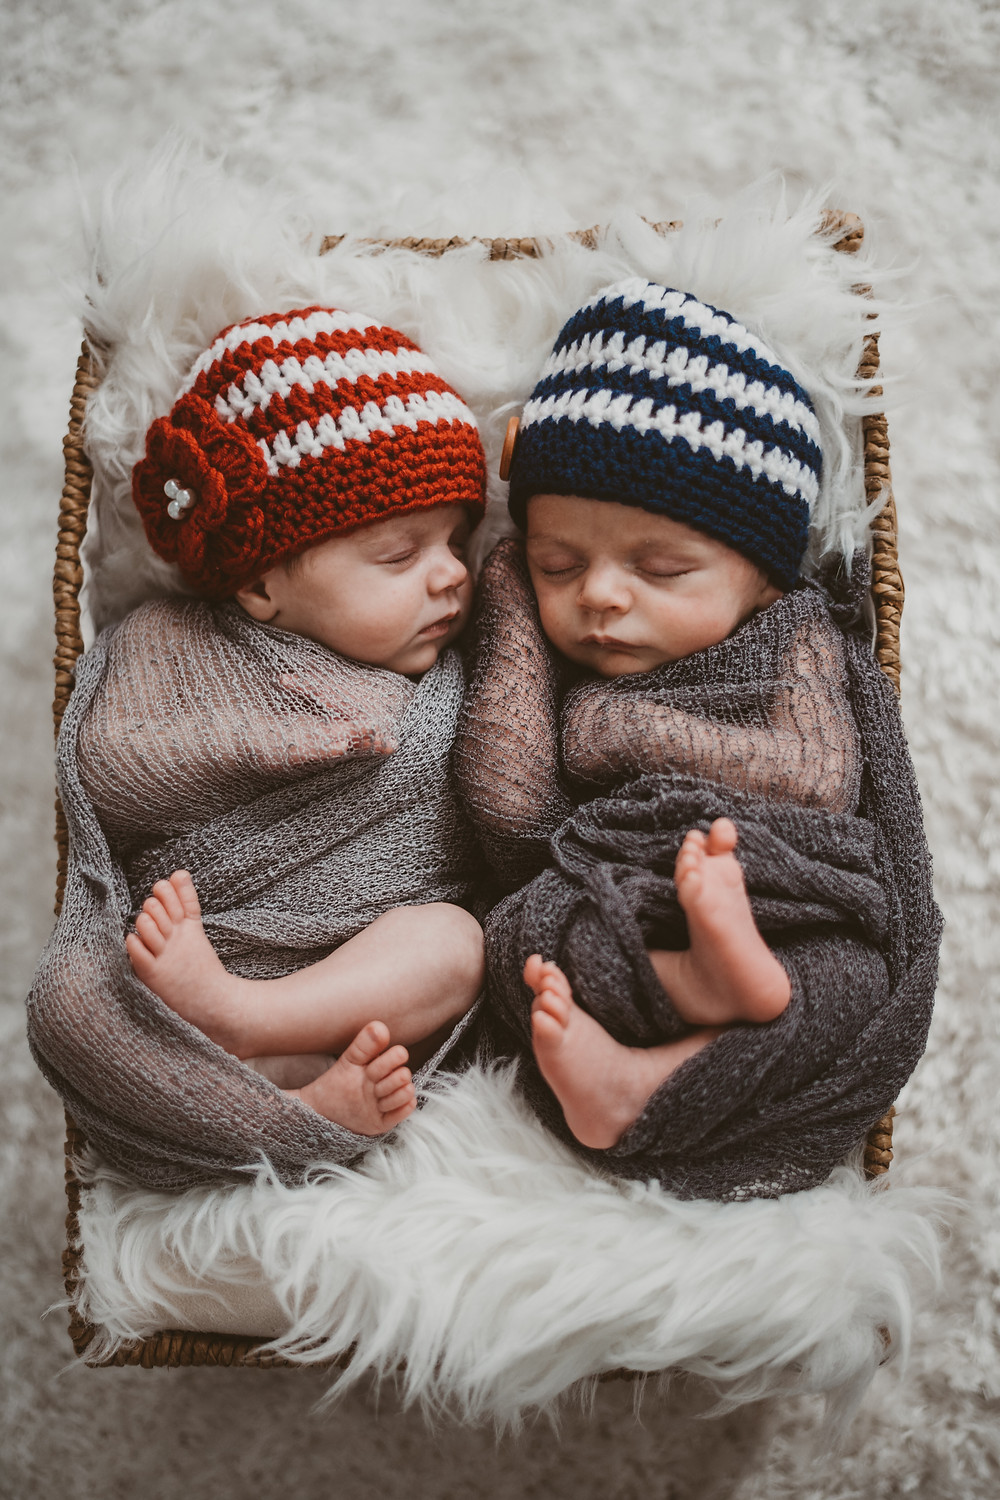 Newborn baby twins sleeping in basket with hand knit hats, one with a button and the other with a knit flower